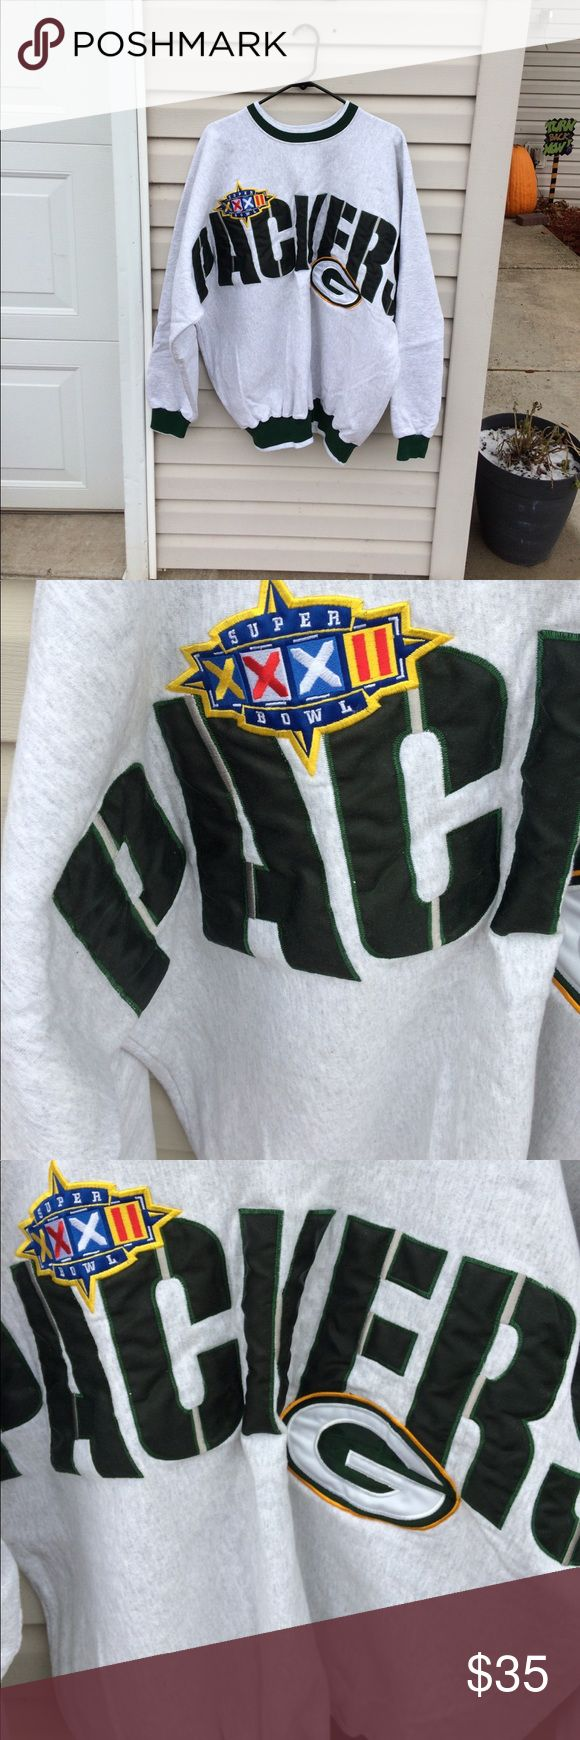 Vintage Packers Super Bowl Sweatshirt It's the Green Bay Packers against the Denver Broncos. The date is January 25, 1998 and the green and gold take home the  Super Bowl 32 Championship title. This Legends brand Green Bay Packers sweatshirt captures that timeless moment. Size XXL, heavy duty material. All logos and lettering are stitched, no screen print. In good vintage condition. Make this a part of your collection! Comes from a smoke free home. Please ask if you have any questions…